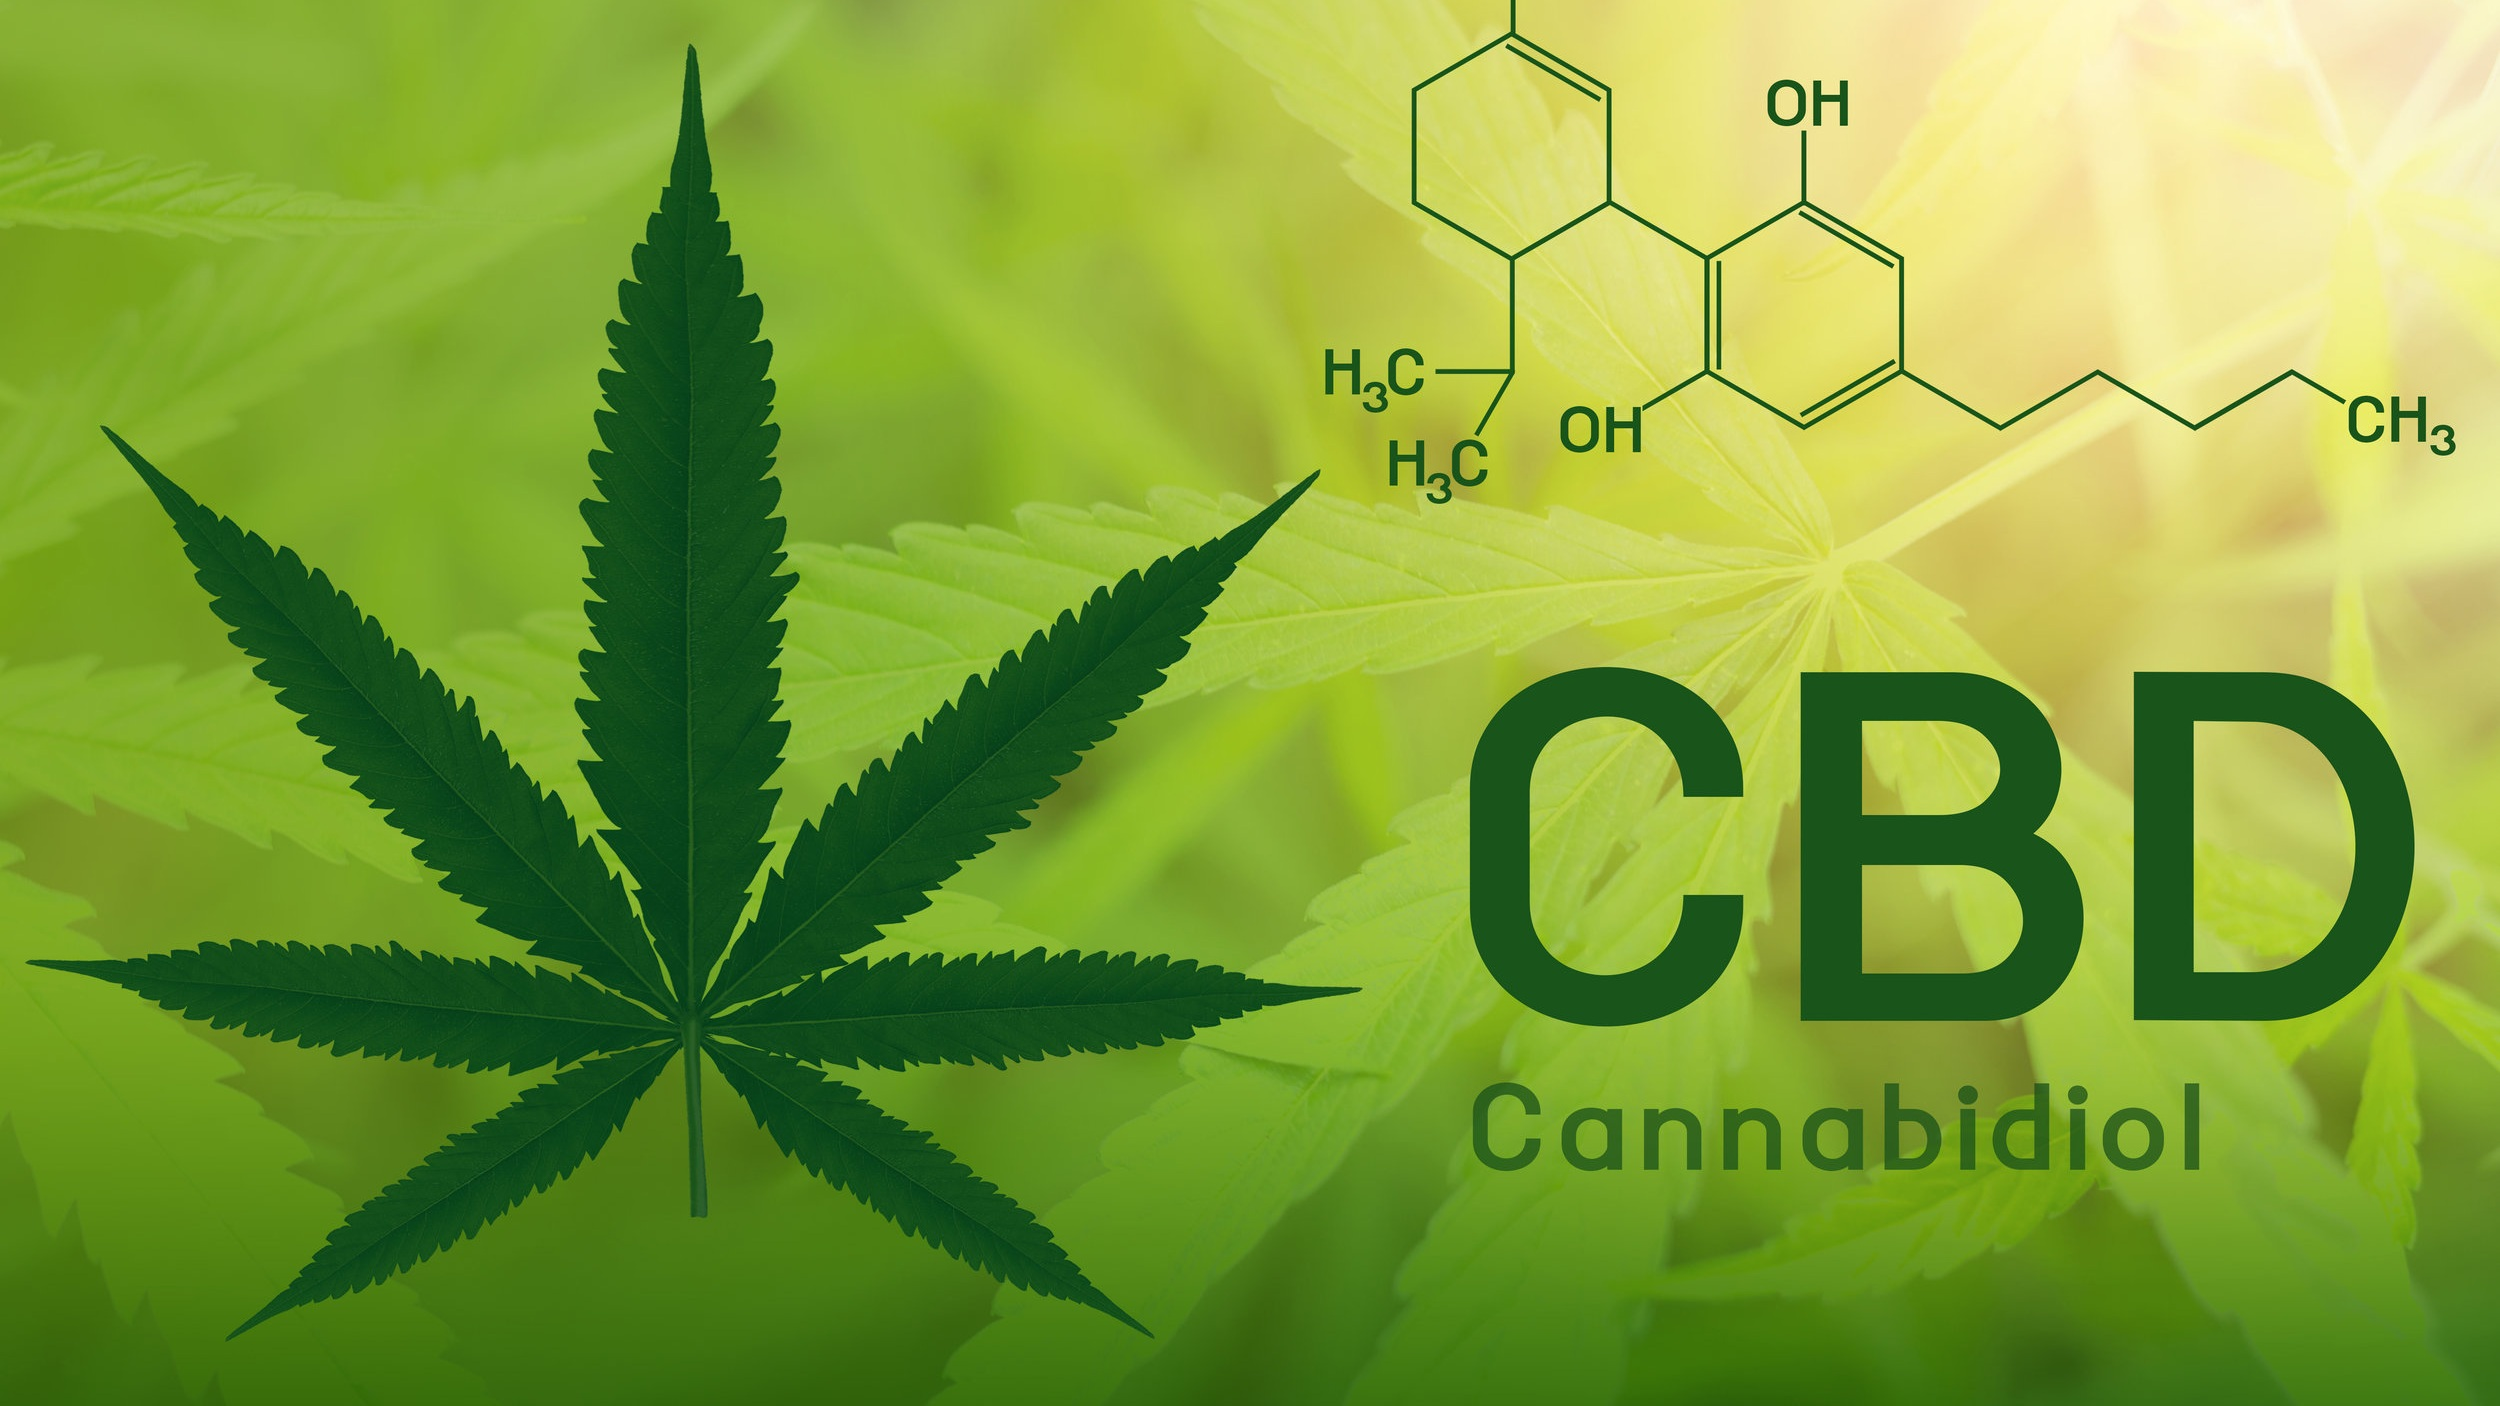 VDACS Okays Manufacture of CBD Products Intended for Human ...